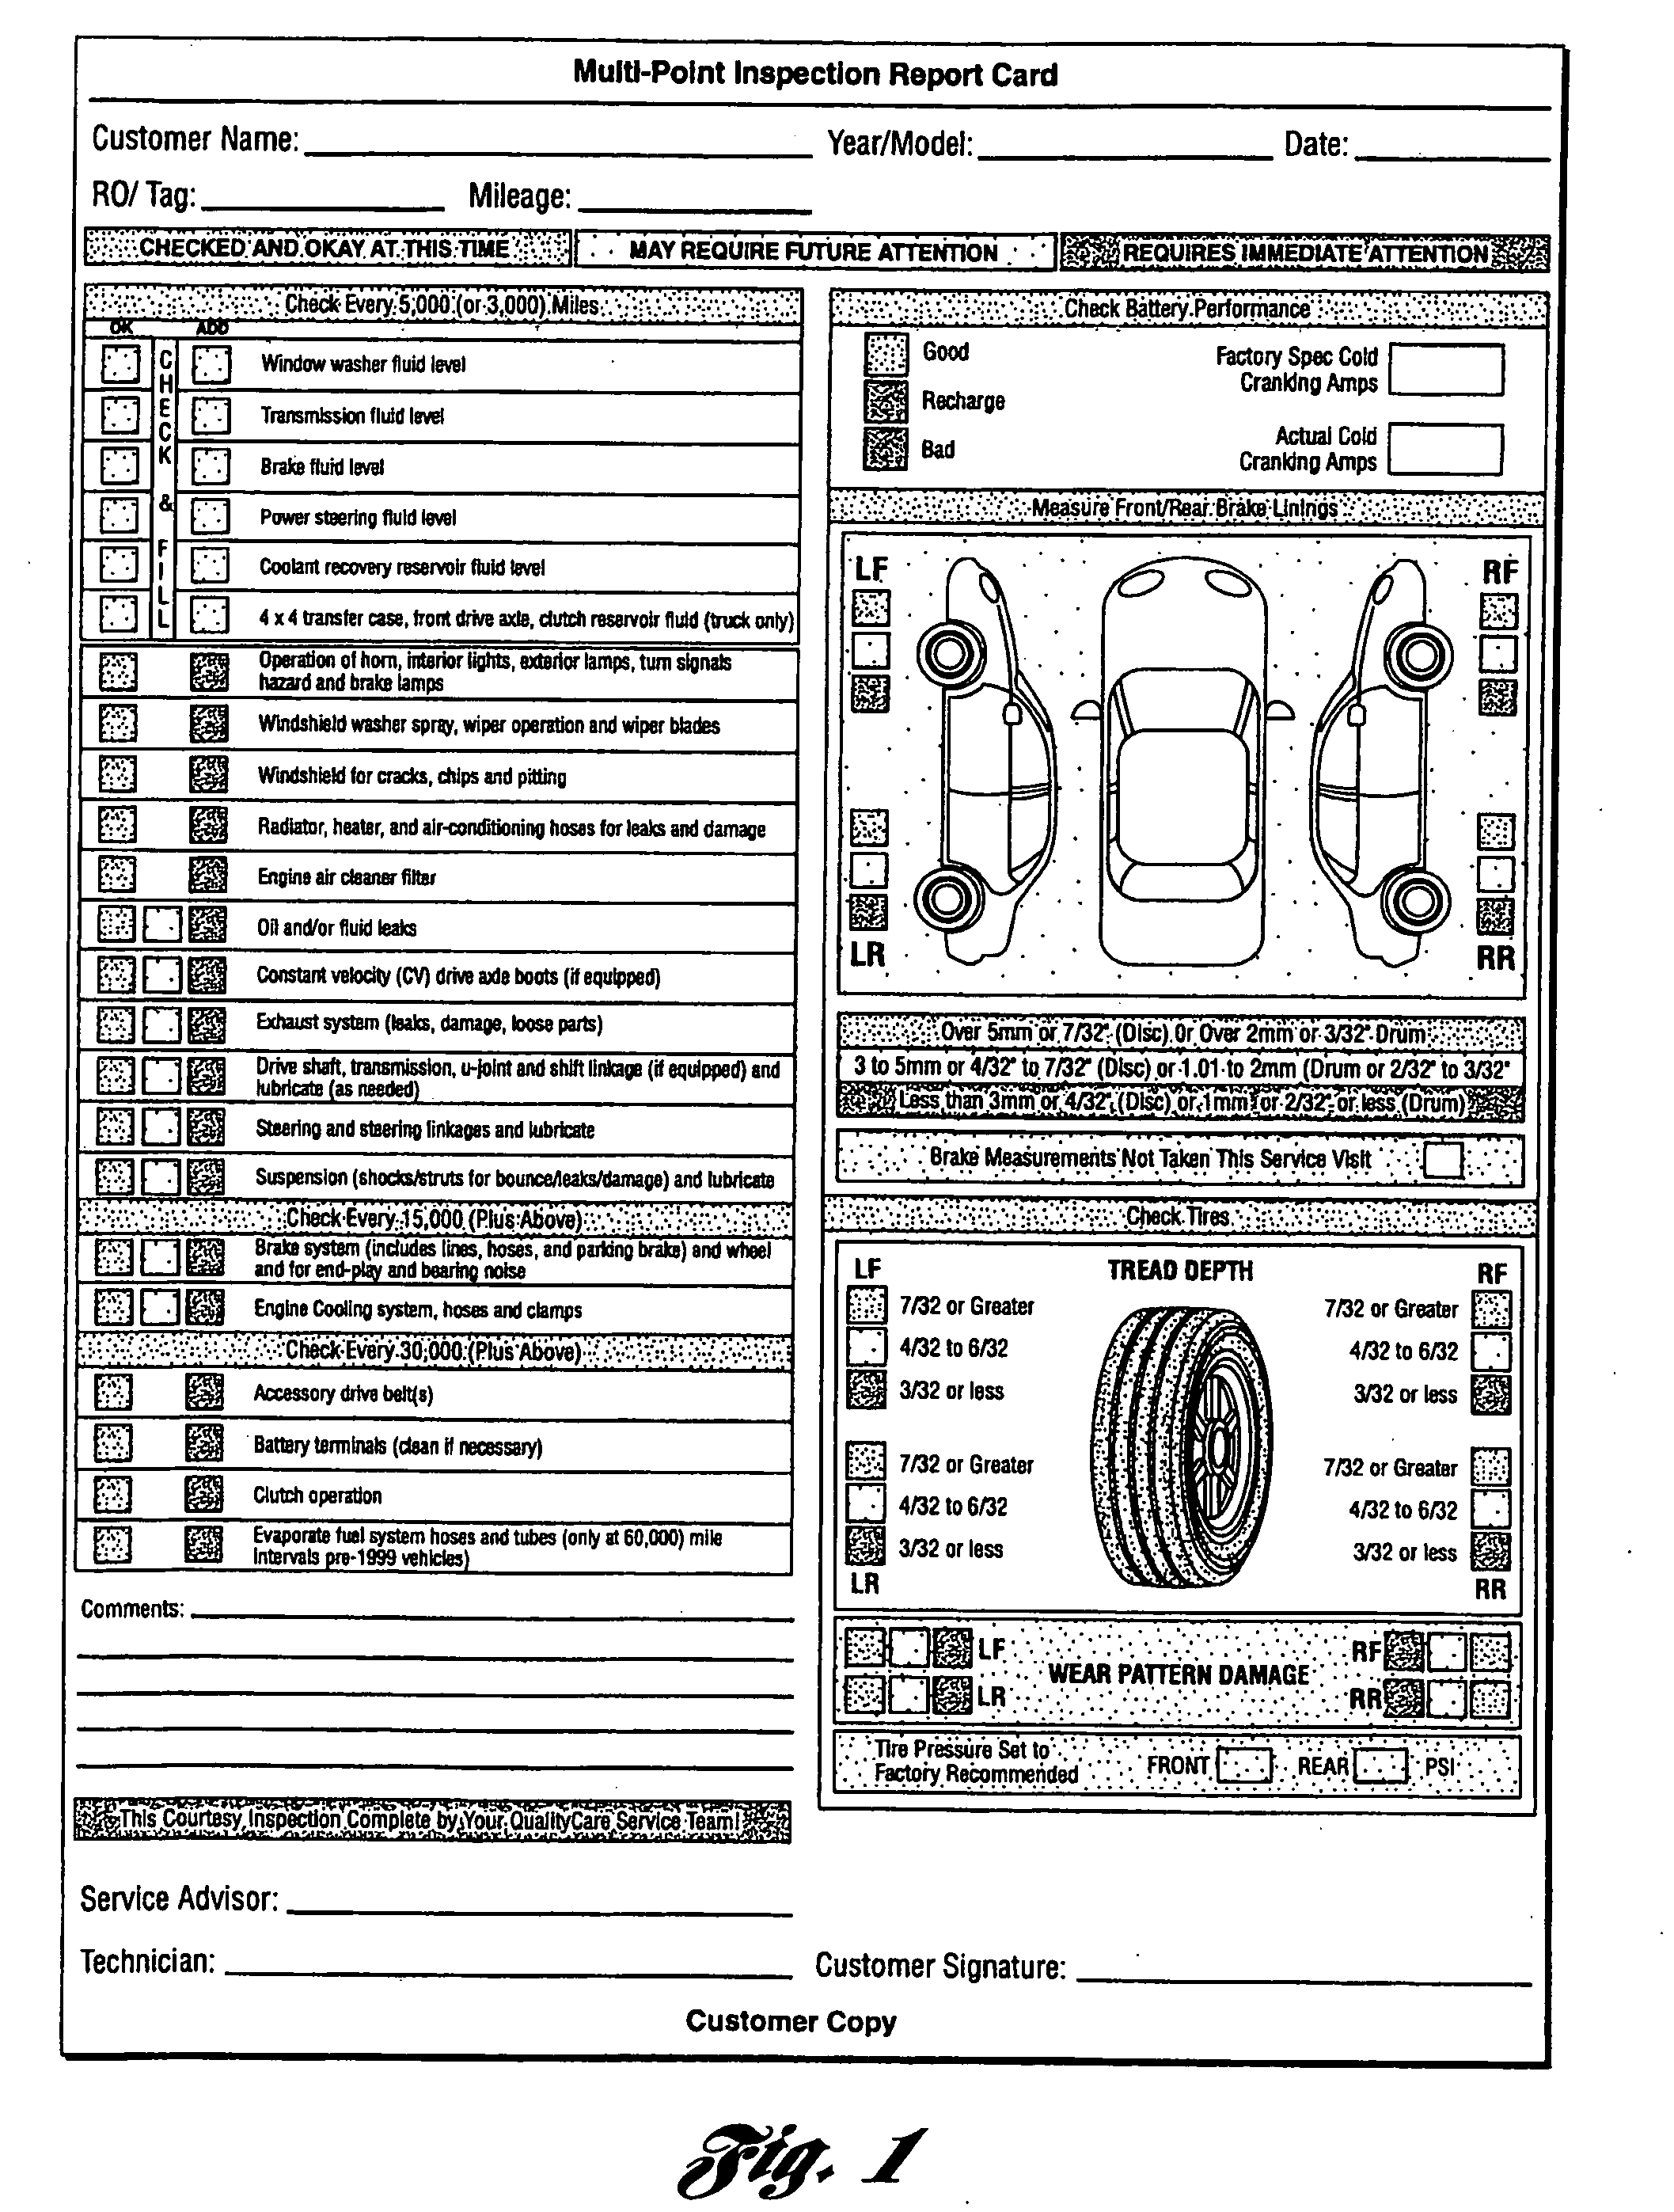 Vehicle Inspection Report Template Free Annual Form Checklist Inside Daily Inspection Report Template